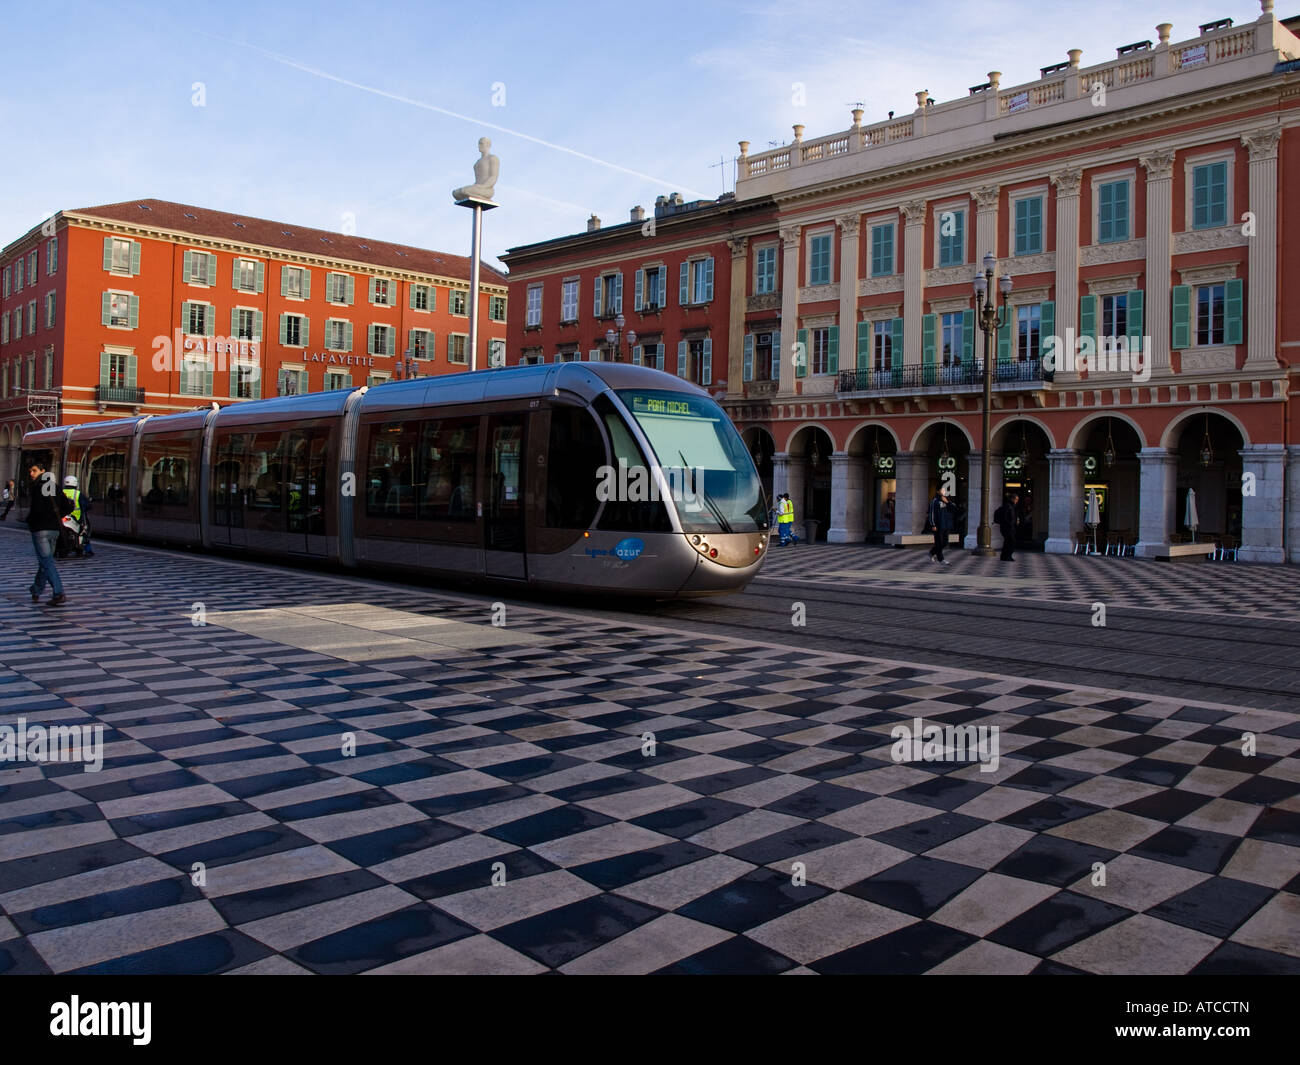 A tram pulls into Place Masséna in Nice, France. - Stock Image